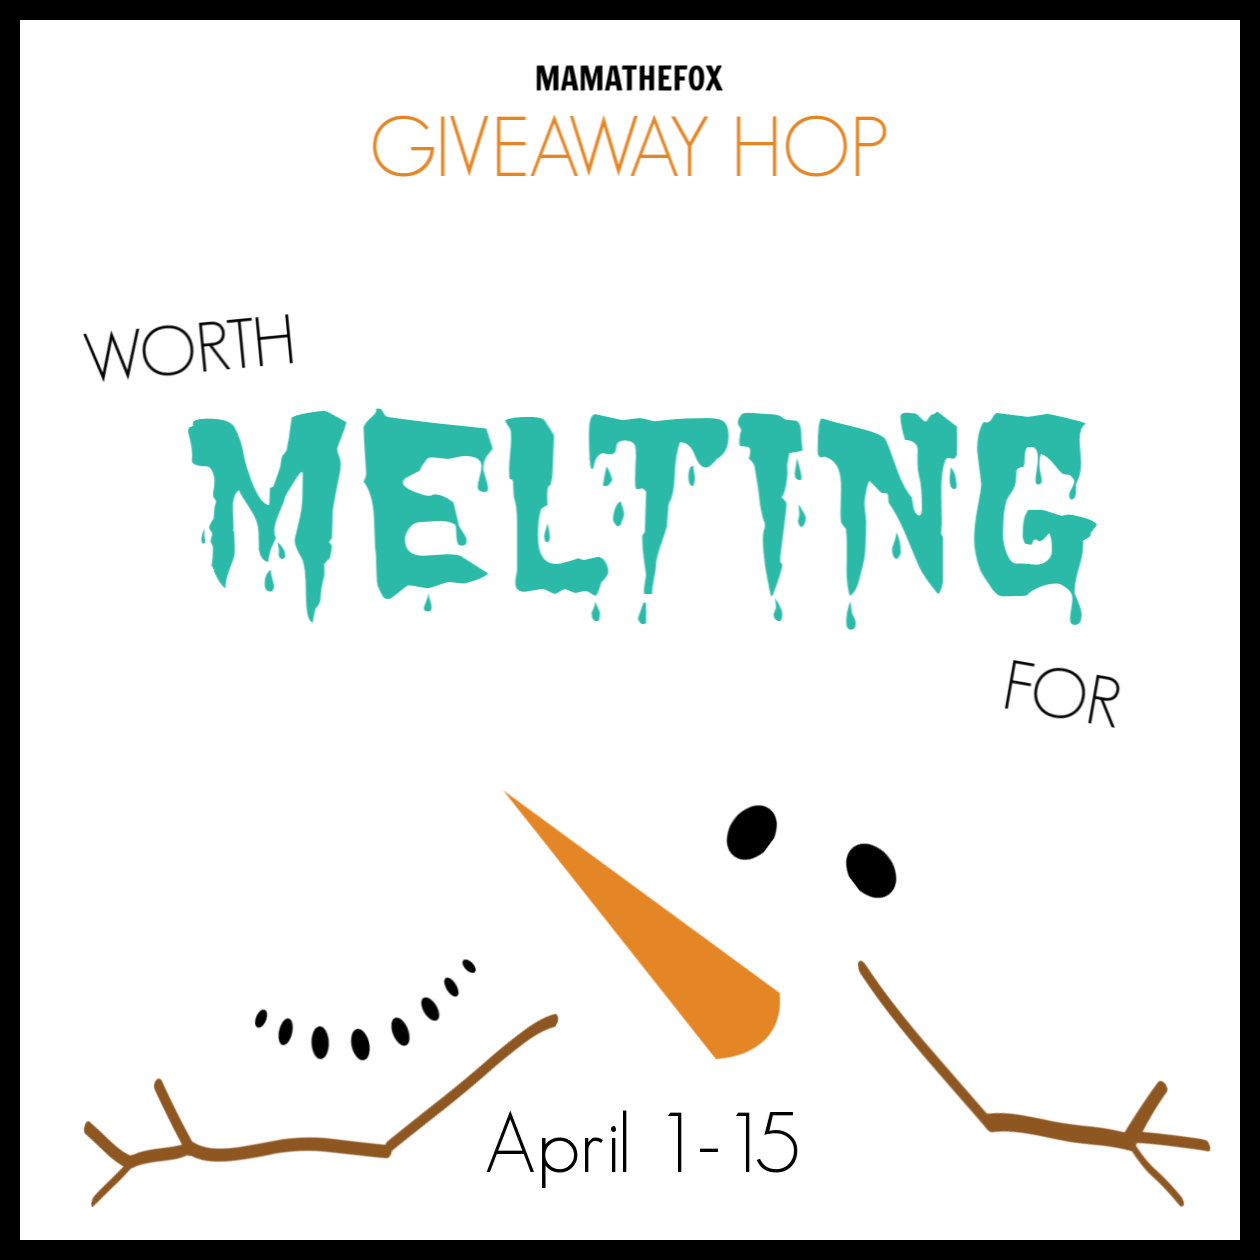 worth melting for giveaway hop